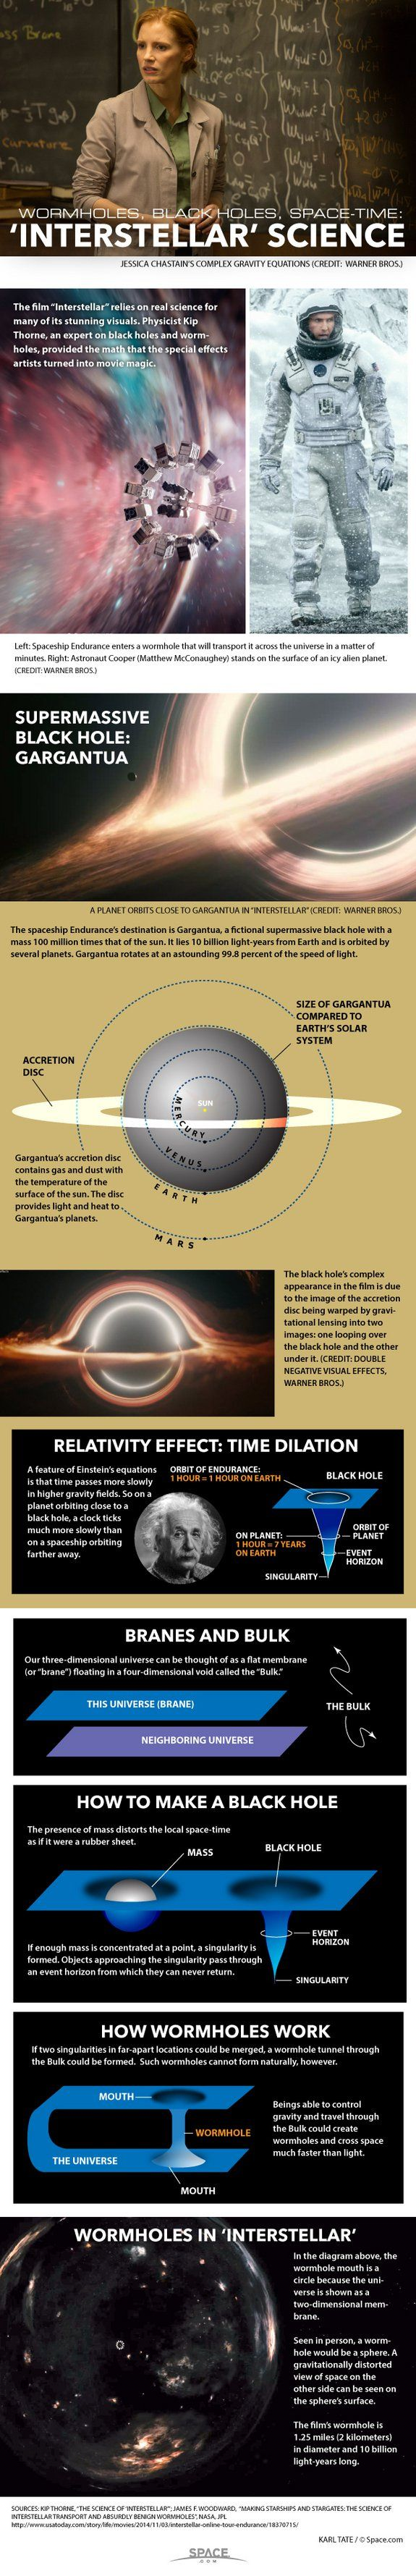 The science behind the movie 'Interstellar' explained (Infographic) | ScienceDump